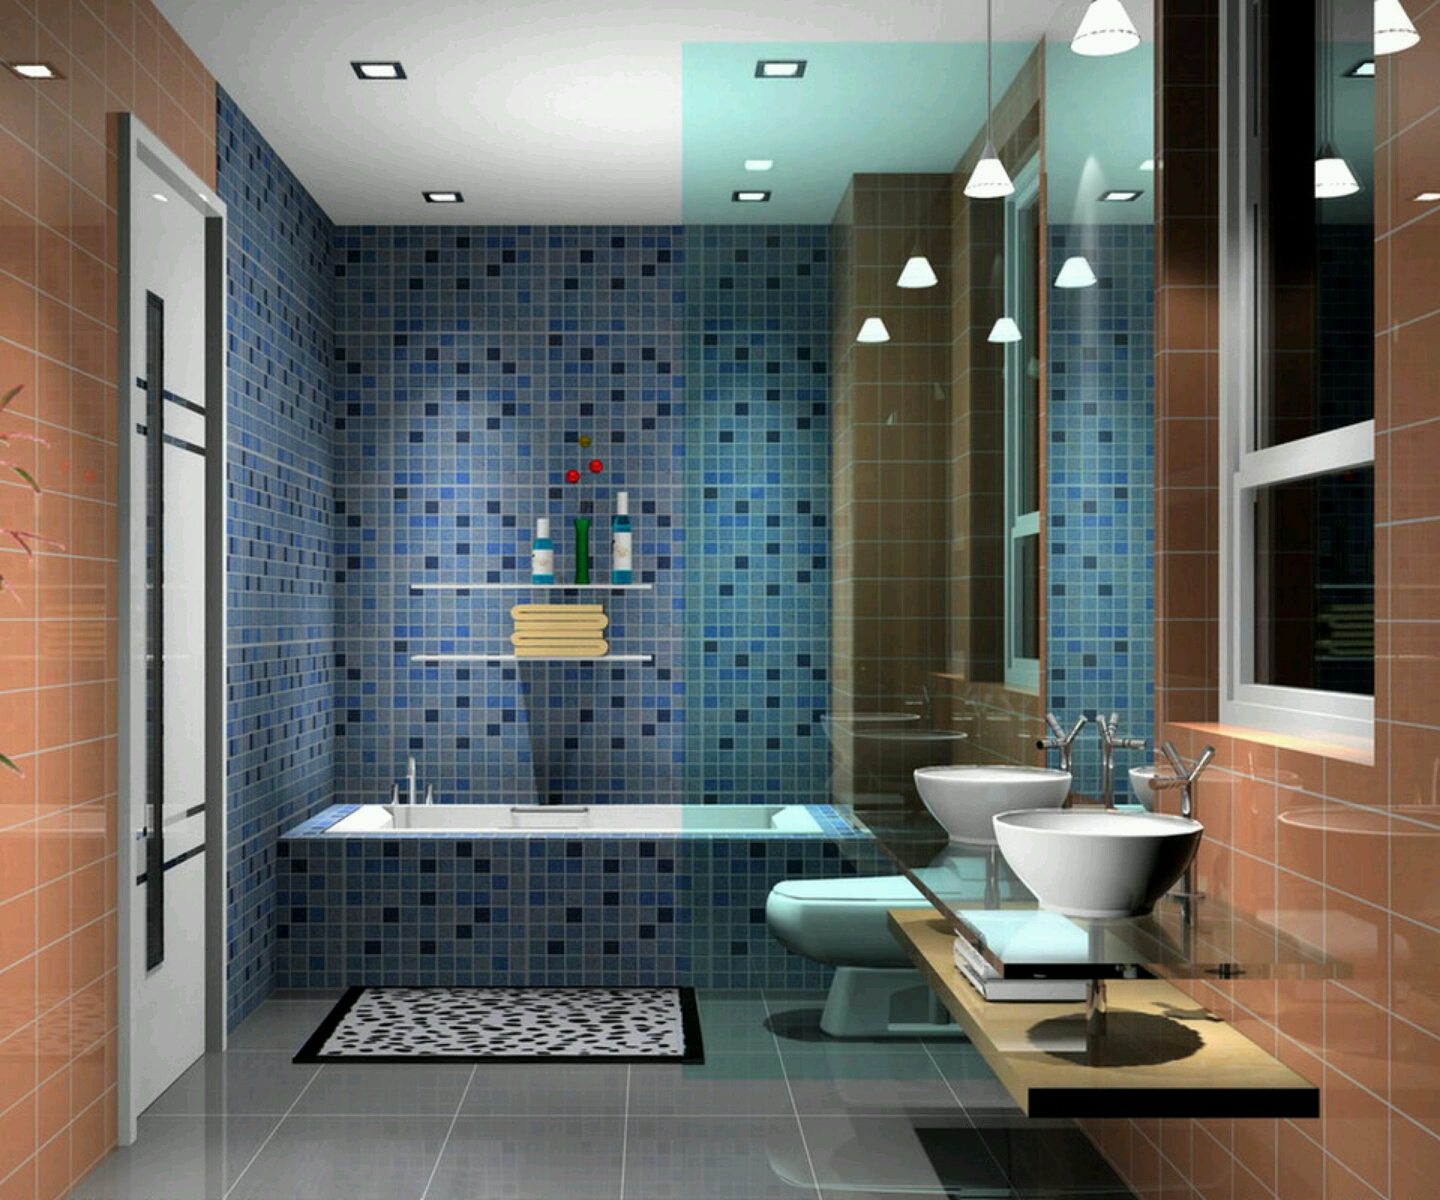 New home designs latest modern bathrooms best designs ideas - Remodel bathroom designs ...